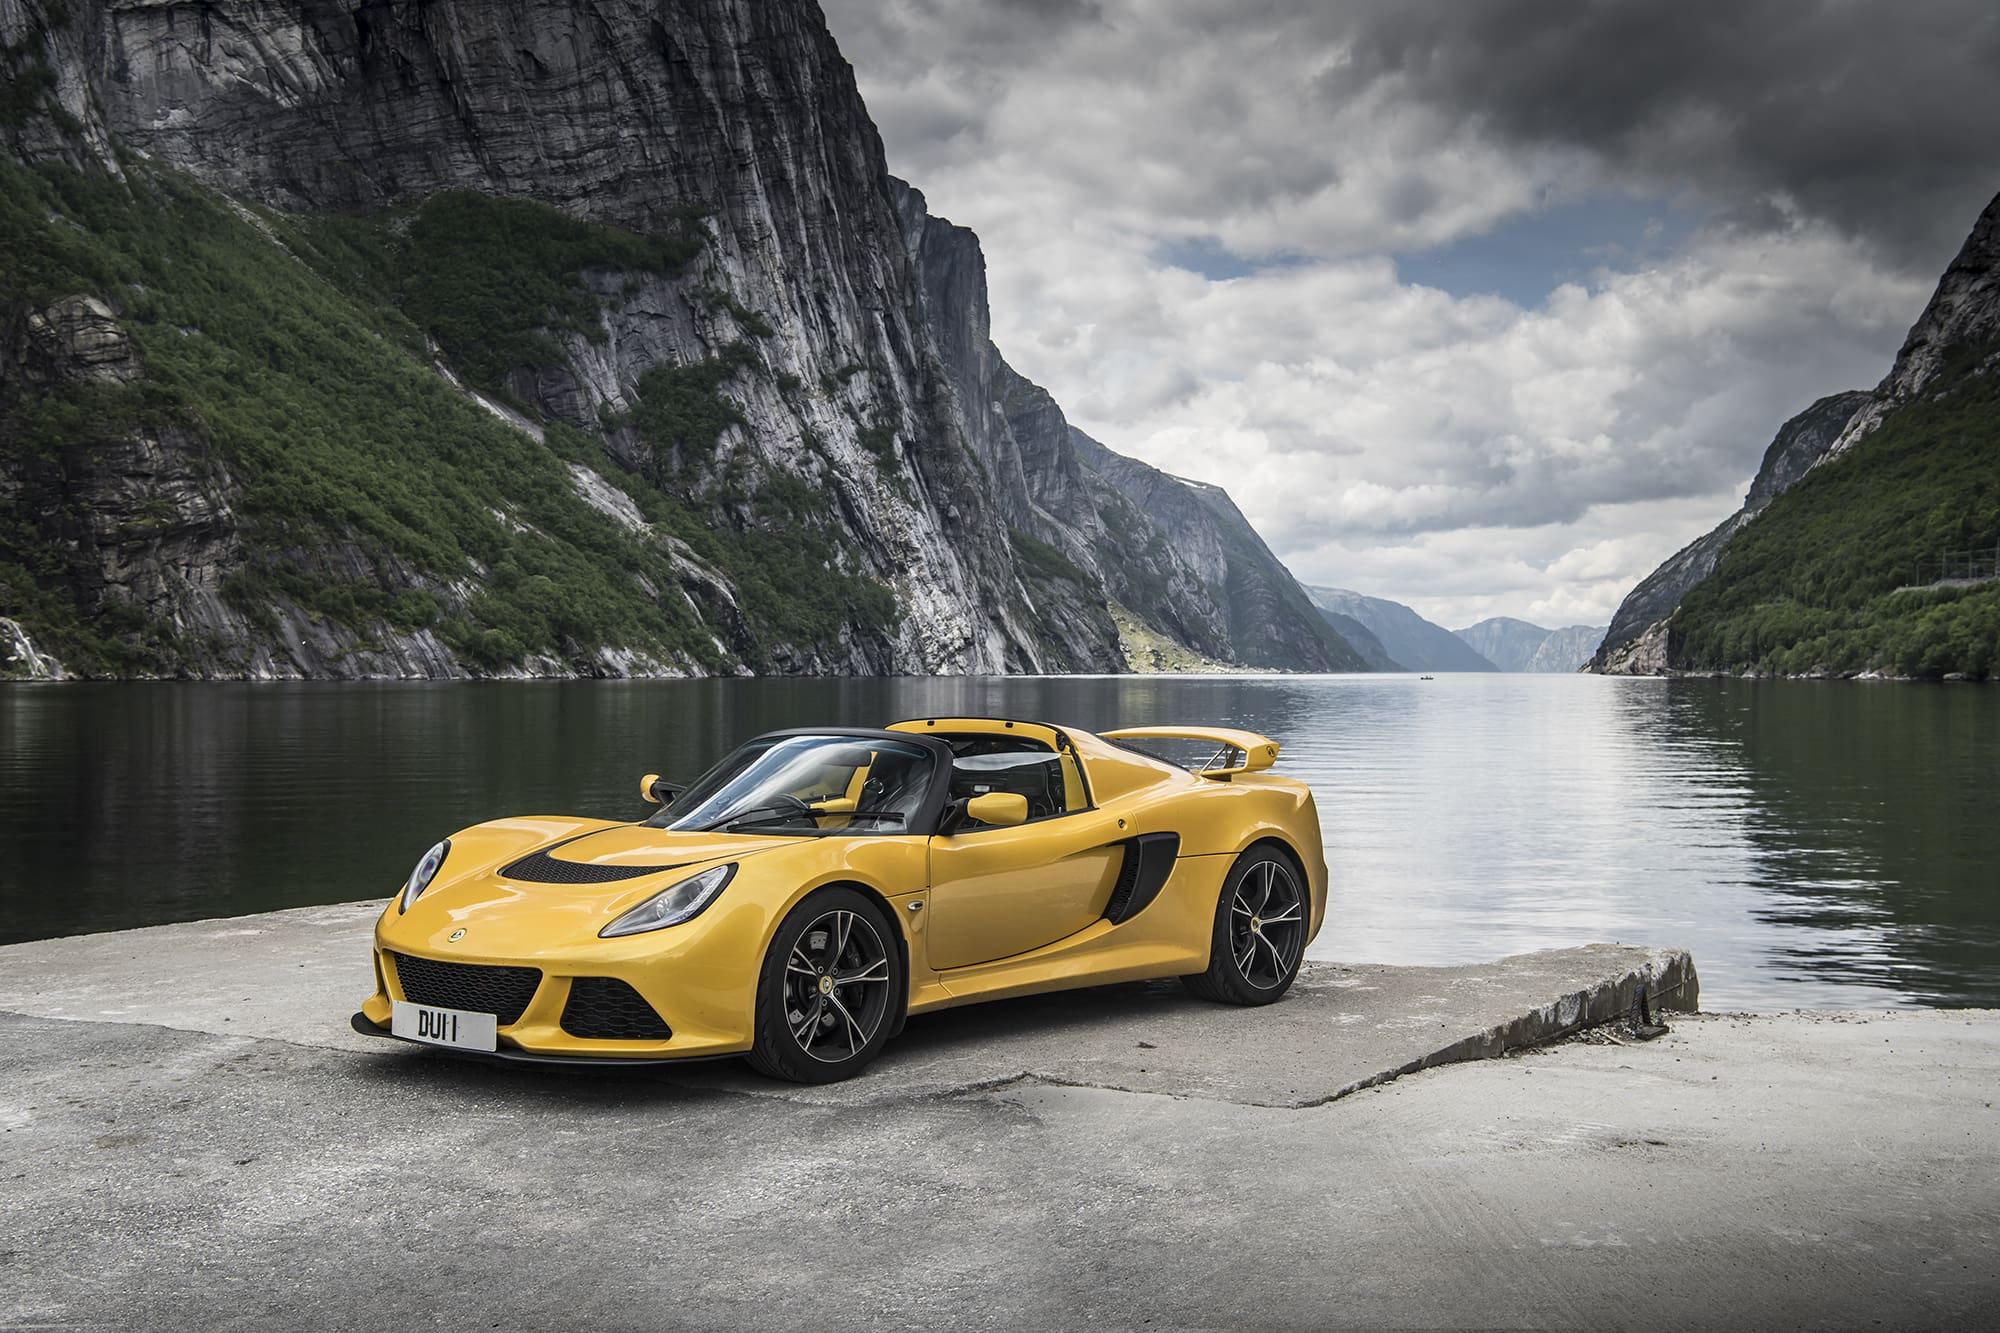 460hp lotus exige v6 page 1 readers 39 cars pistonheads. Black Bedroom Furniture Sets. Home Design Ideas